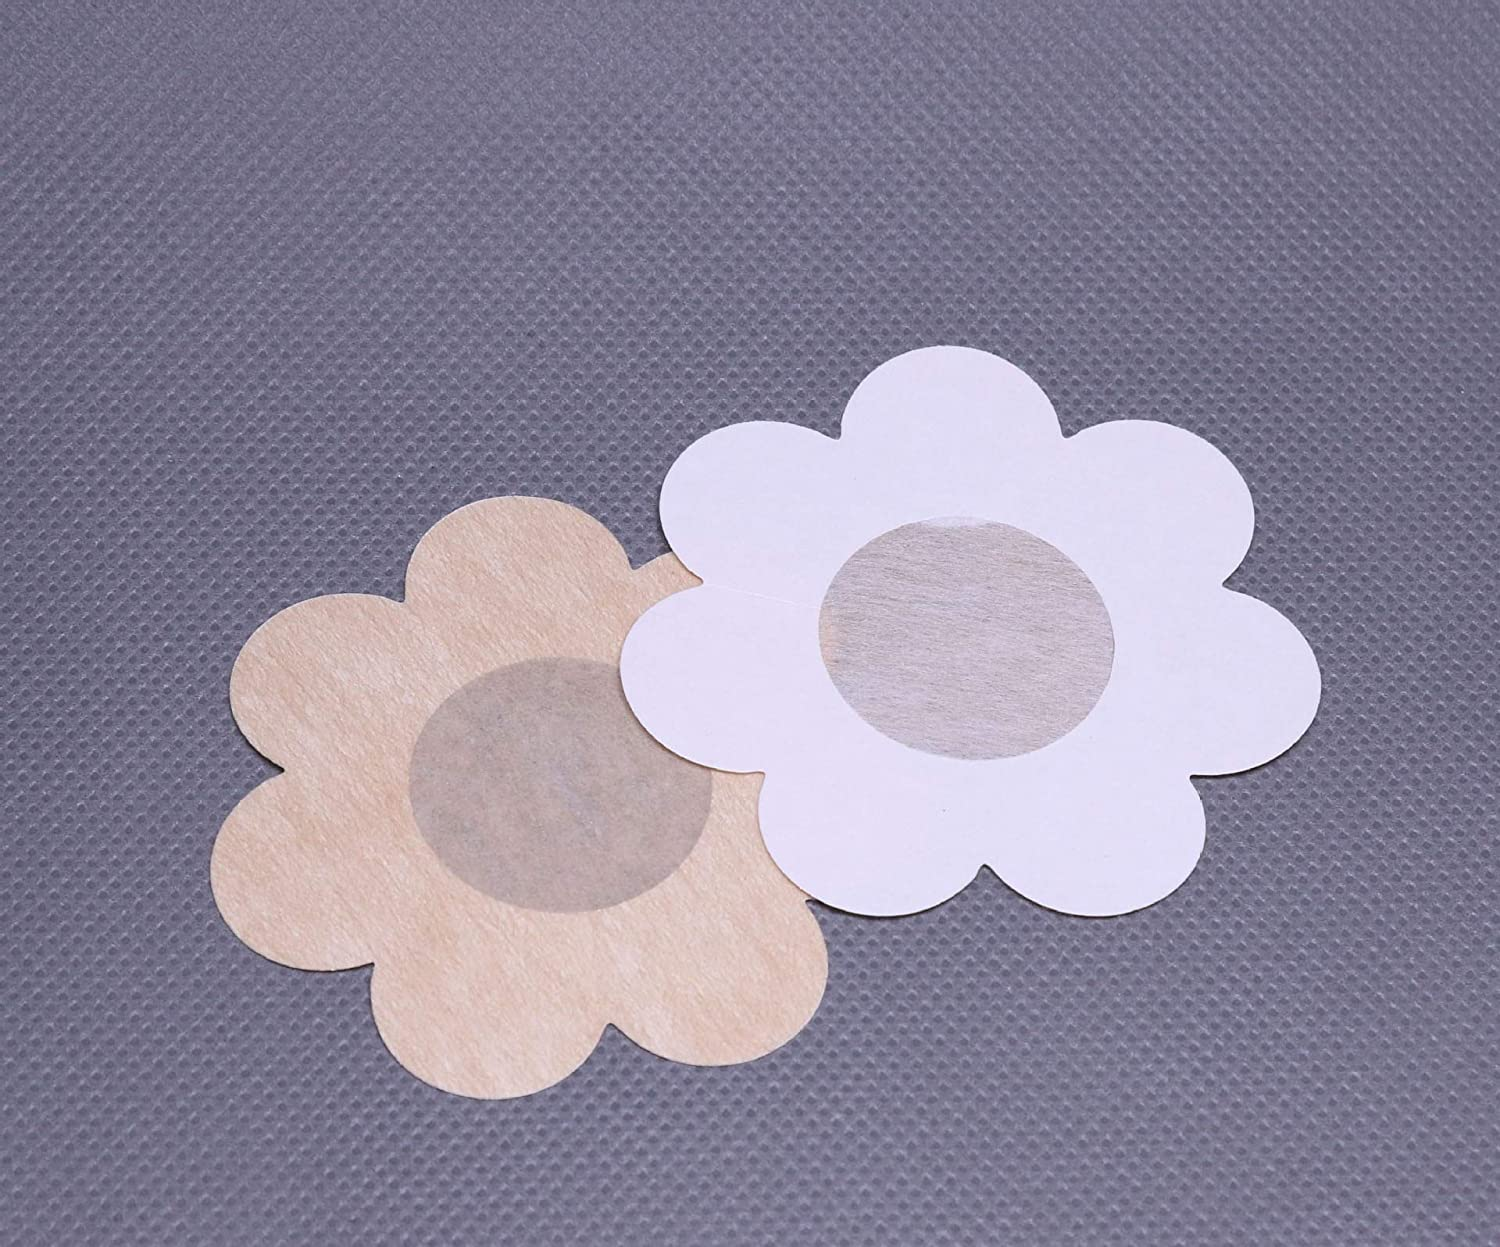 20 Disposable Ladies Breast Nipple Covers Adhesive Invisible Instant Boob Lift Tapes Bra Pads Non-Woven Stickers